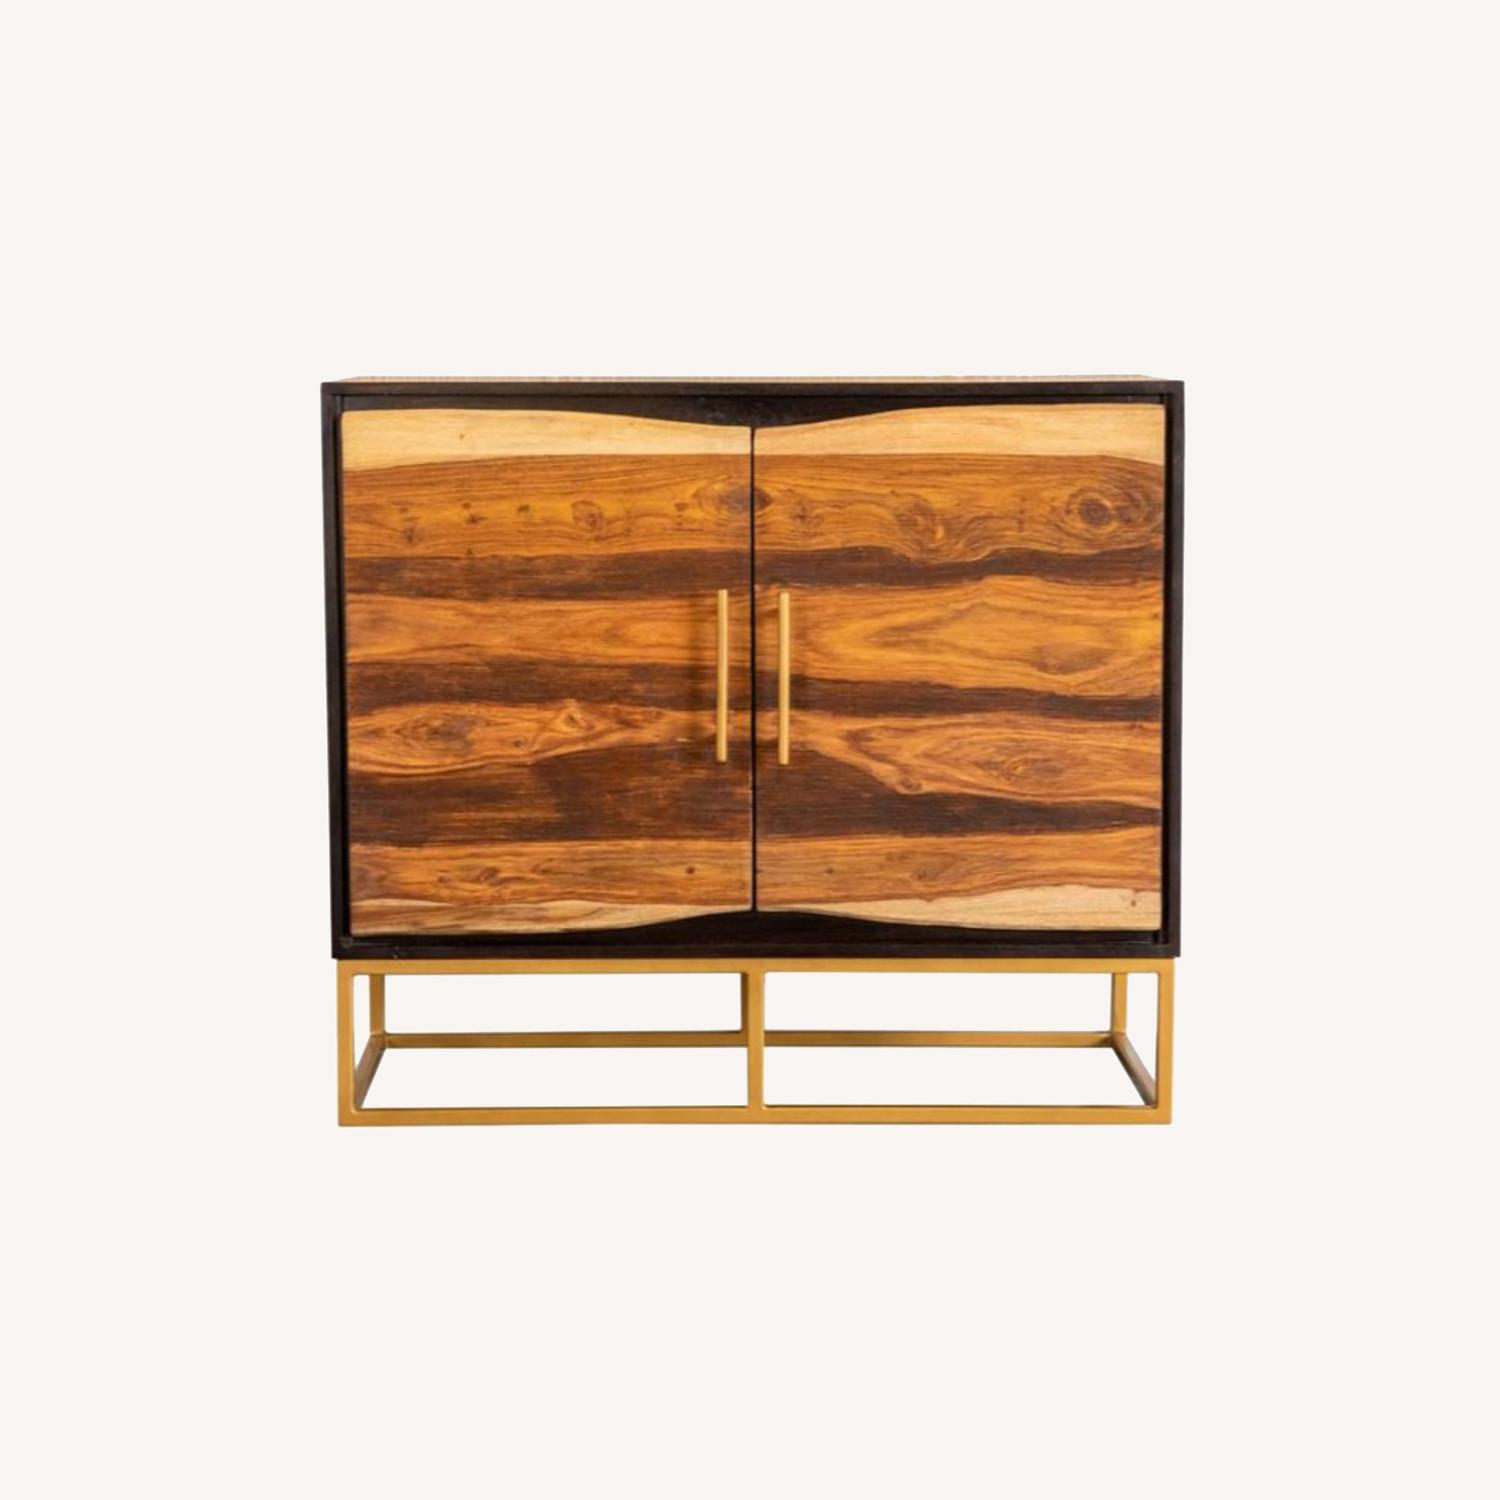 Accent Cabinet In Black Walnut & Gold Finish - image-5